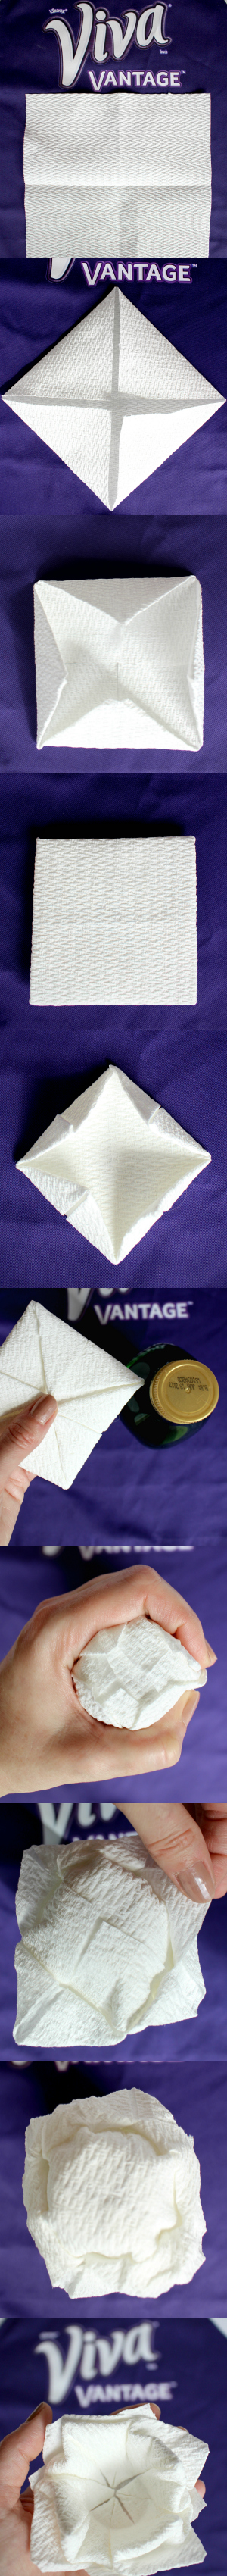 DIY Paper Towel Flowers tutorial using Viva Vantage paper towels